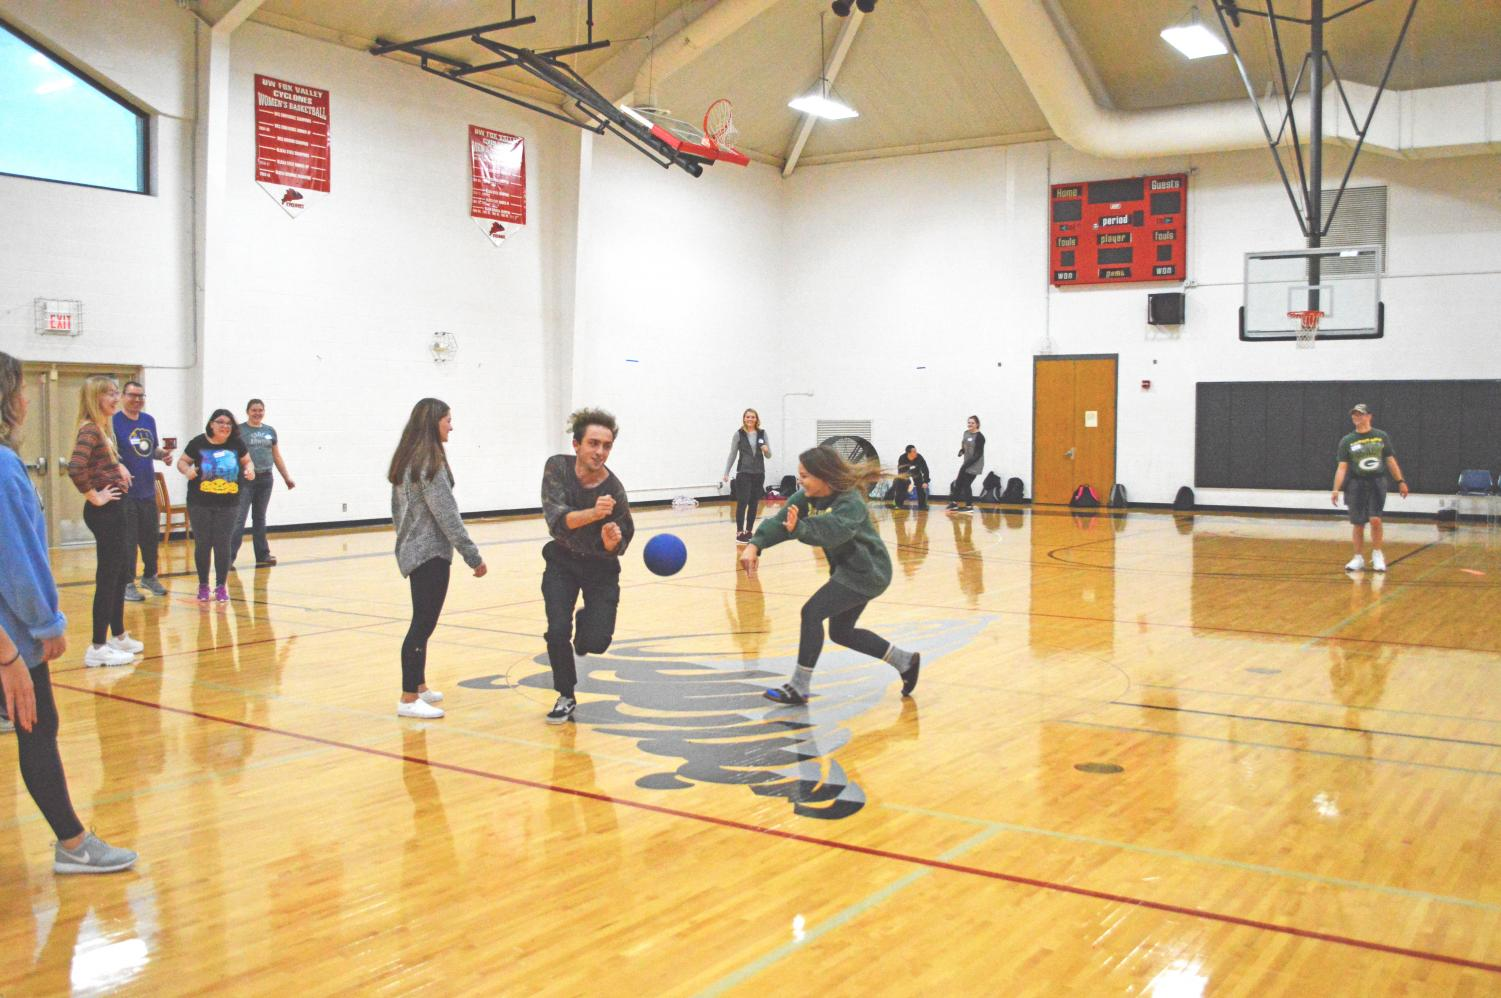 UWO-FC students enrolled in a service learning course play kickball with students from Thrive Career Academy